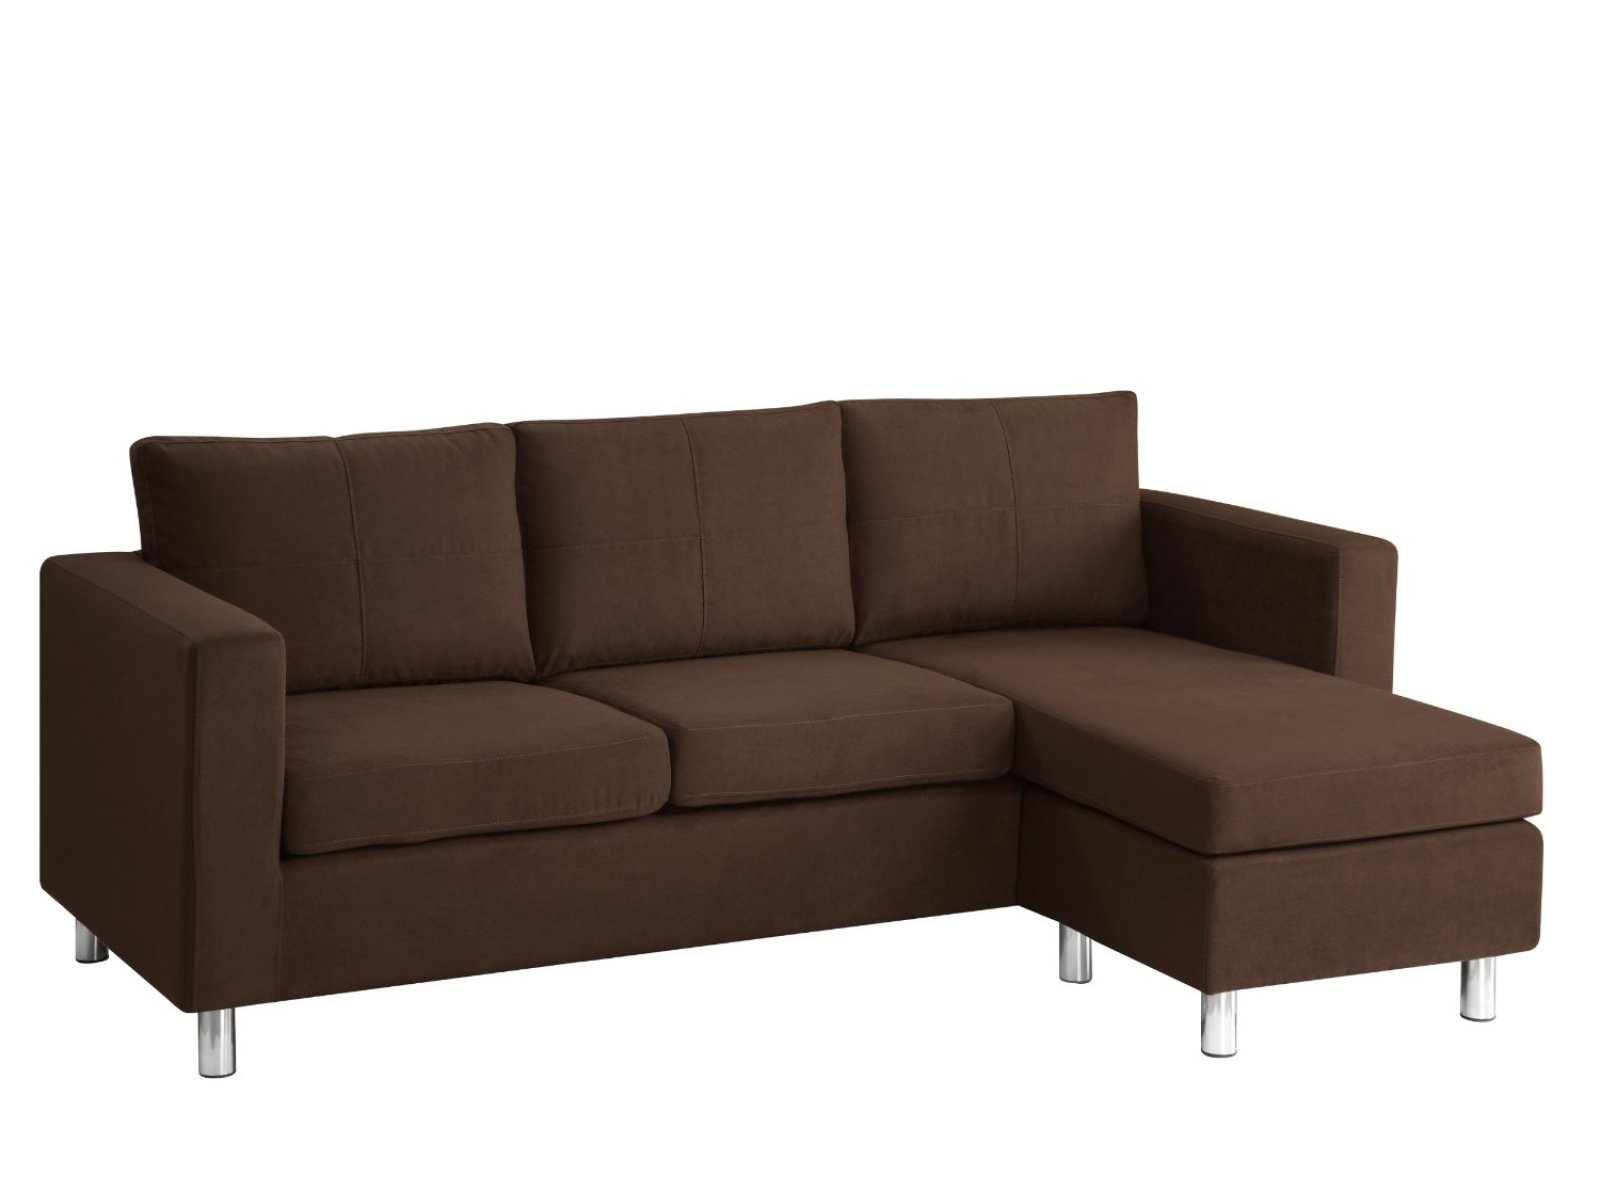 2018 ▻ Sofa : 8 Small Sectional Sofas Reviews Small Leather Sectional With Regard To Sectional Sofas For Small Places (View 20 of 20)